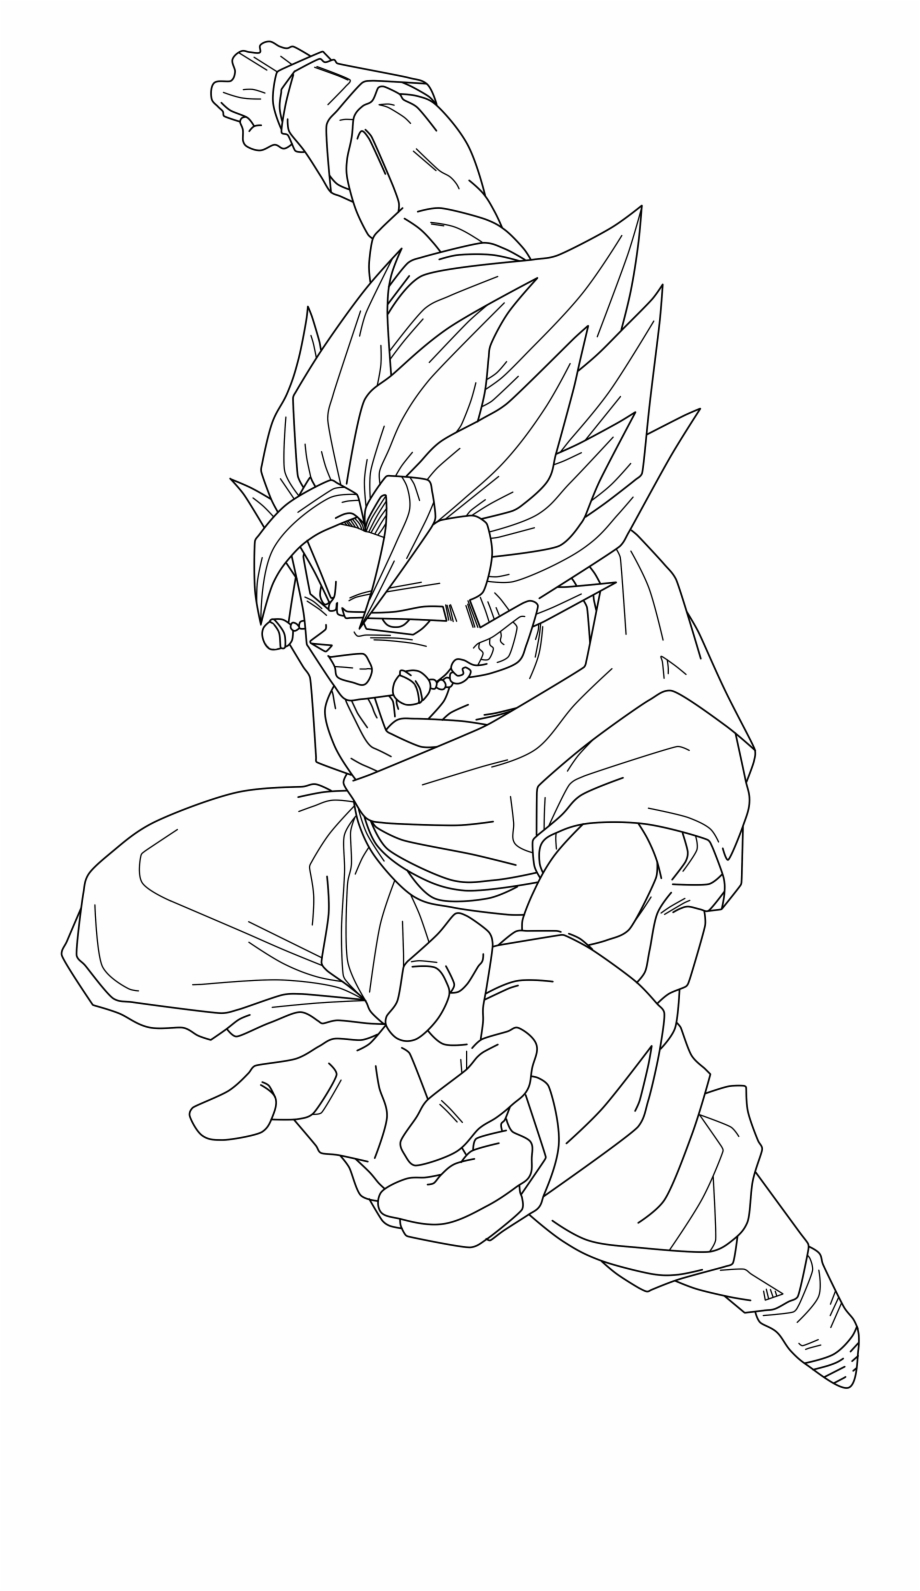 Dragon Ball Z #23 (Cartoons) – Printable coloring pages | 1591x920